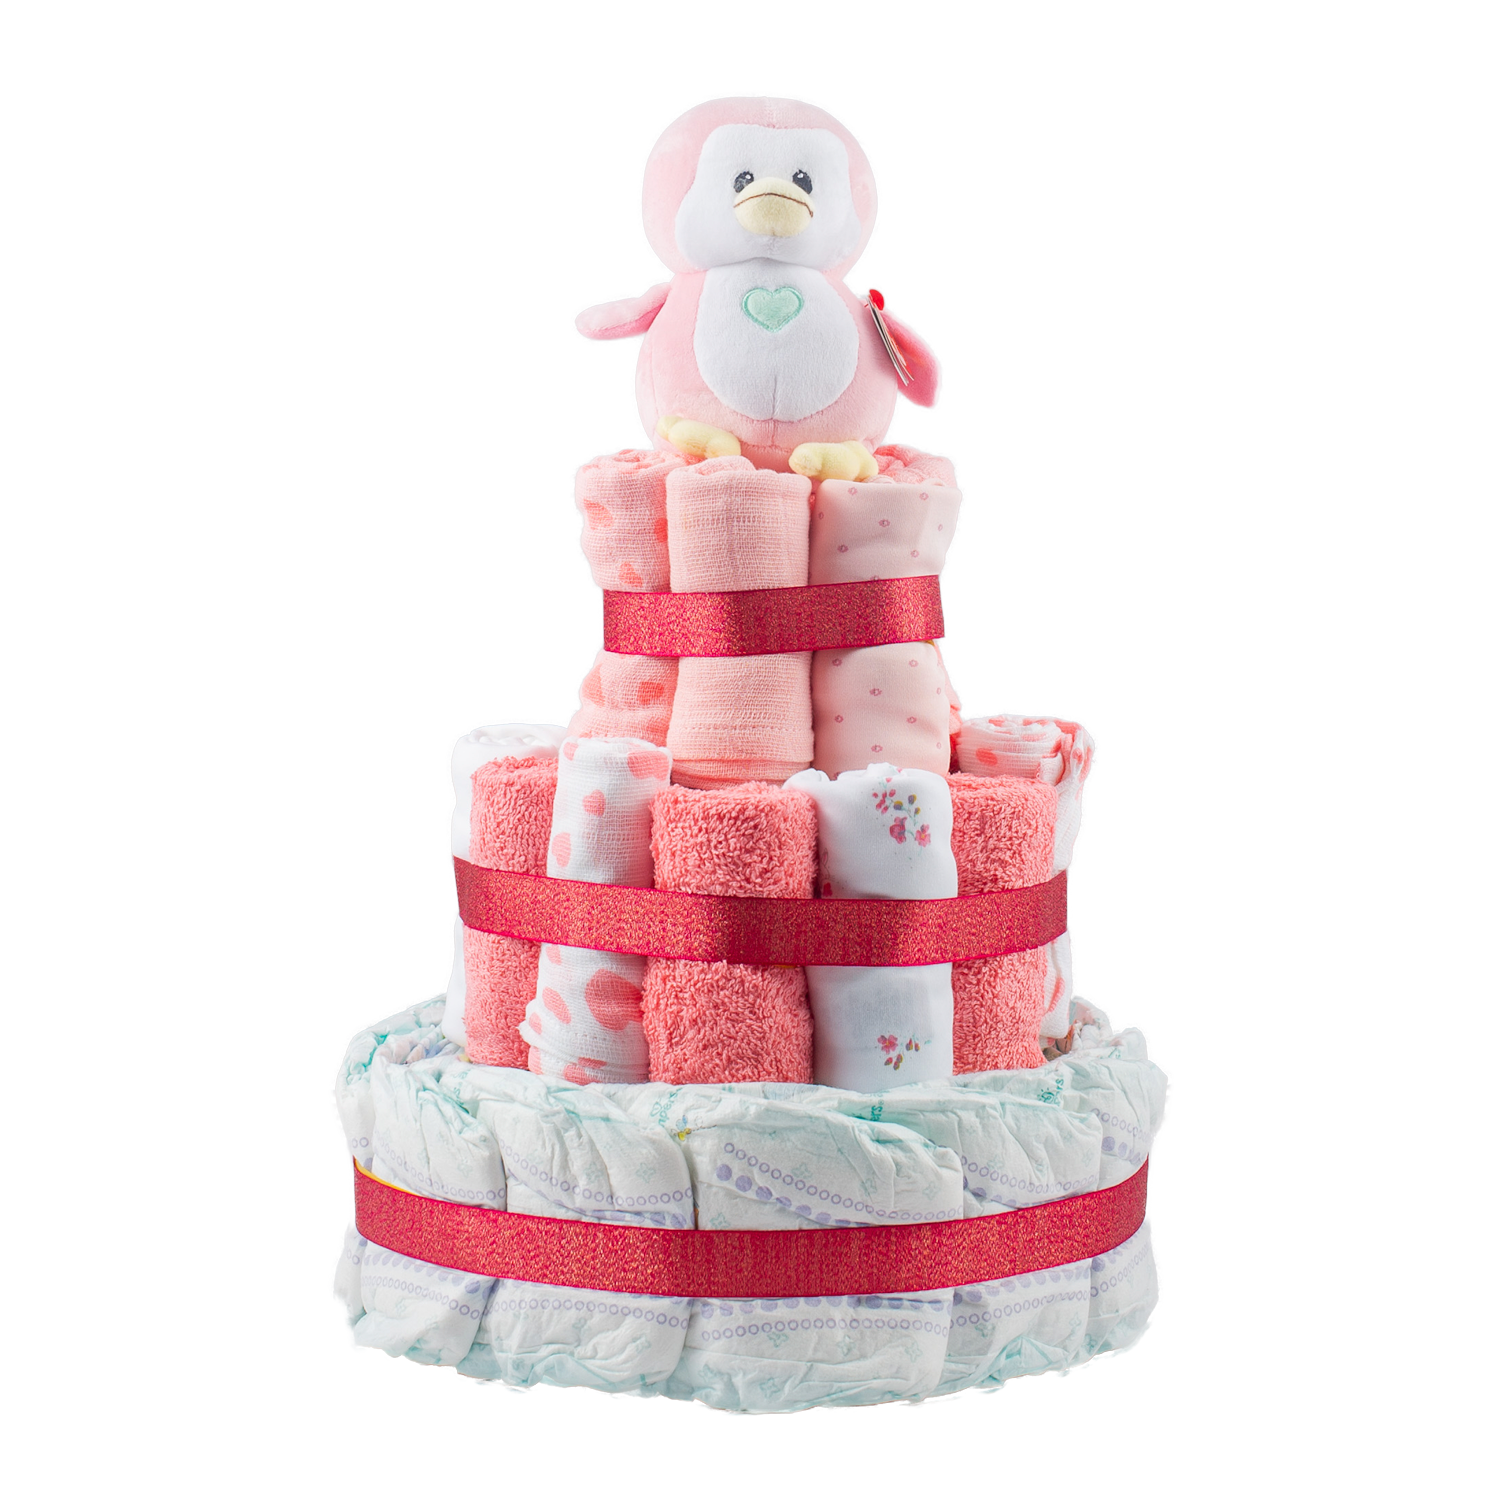 Personalised 3-Tier Pink Nappy Cake